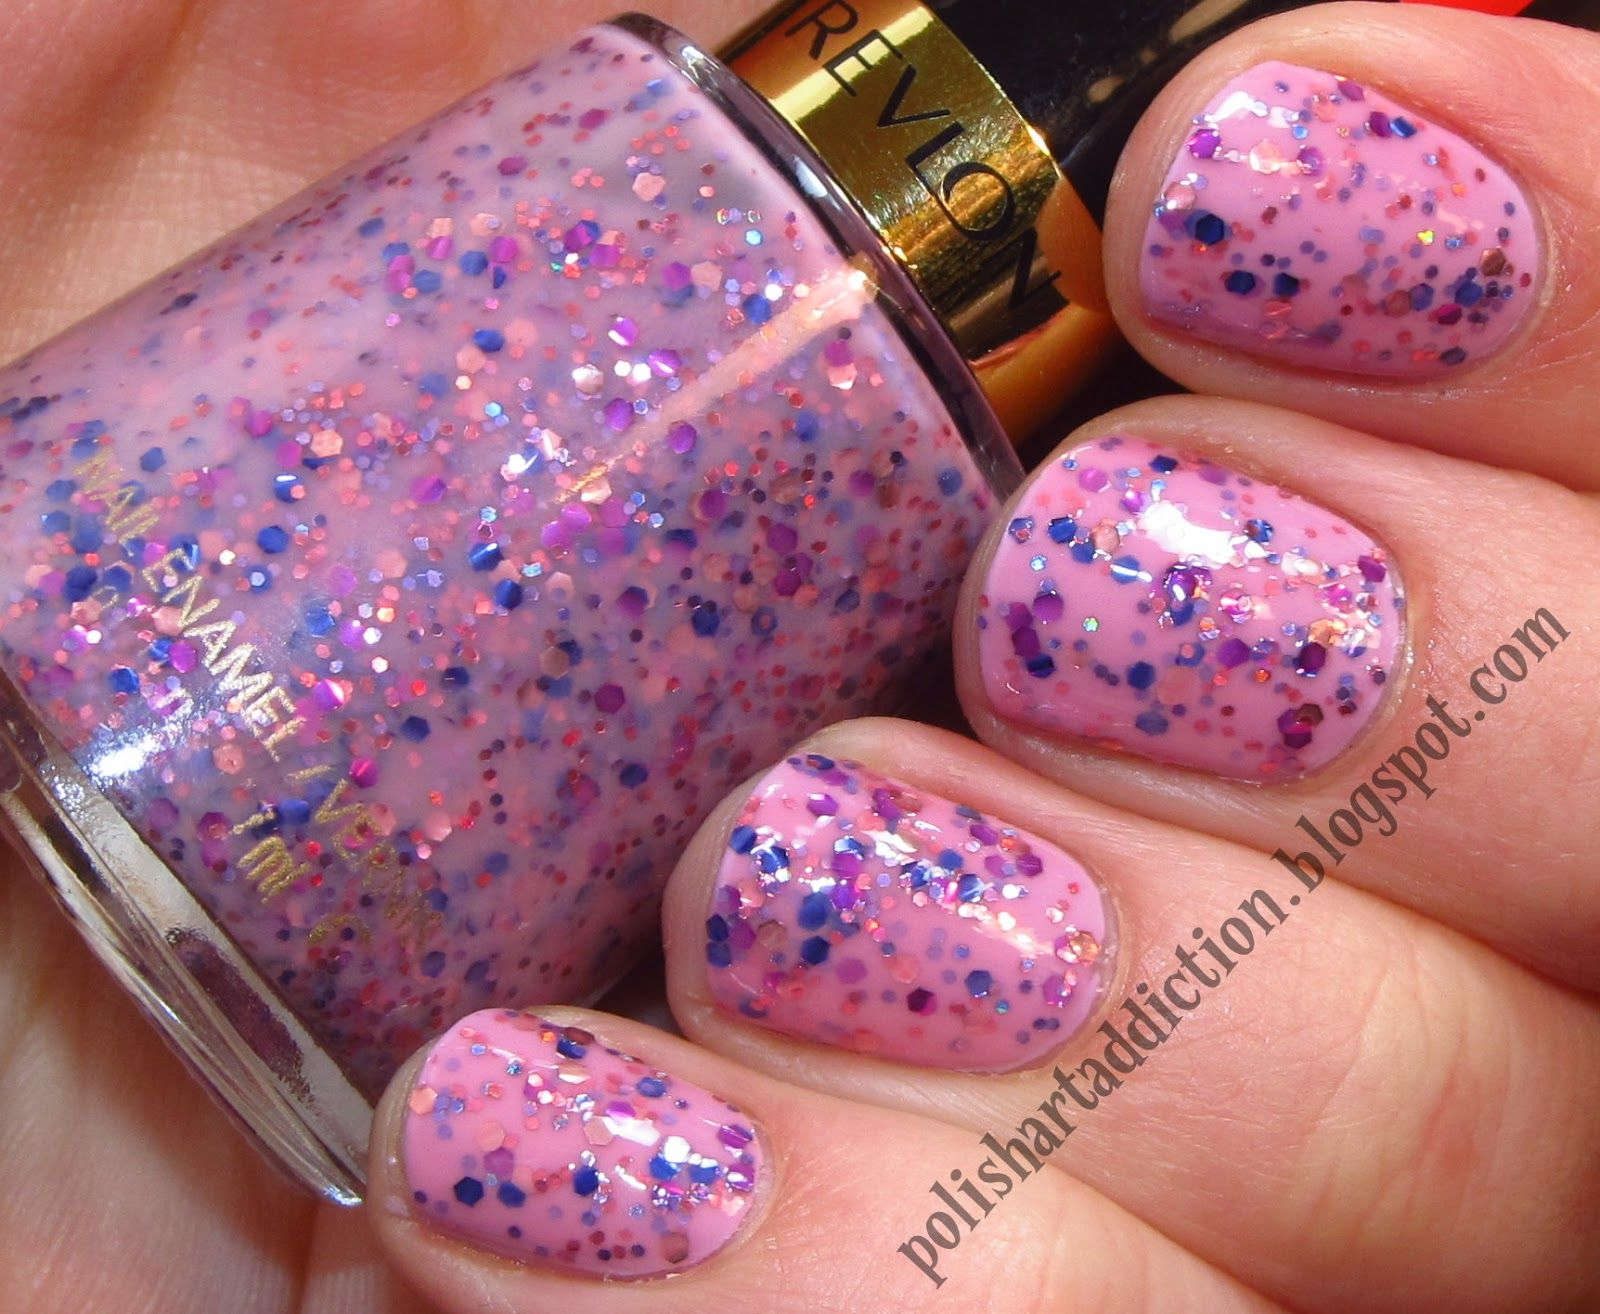 Revlon Nail Polish - Girly | My Nail Polish Collection | Pinterest ...